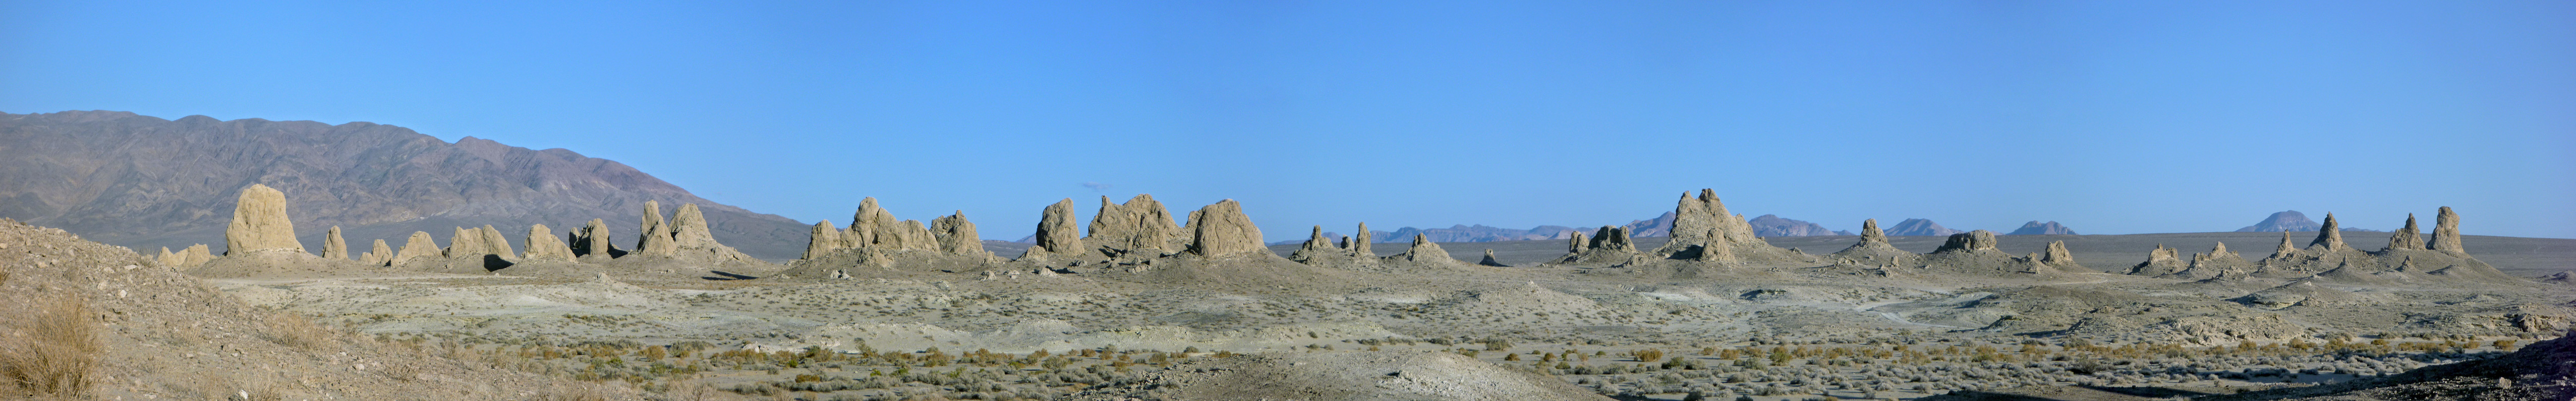 Panorama of the pinnacles